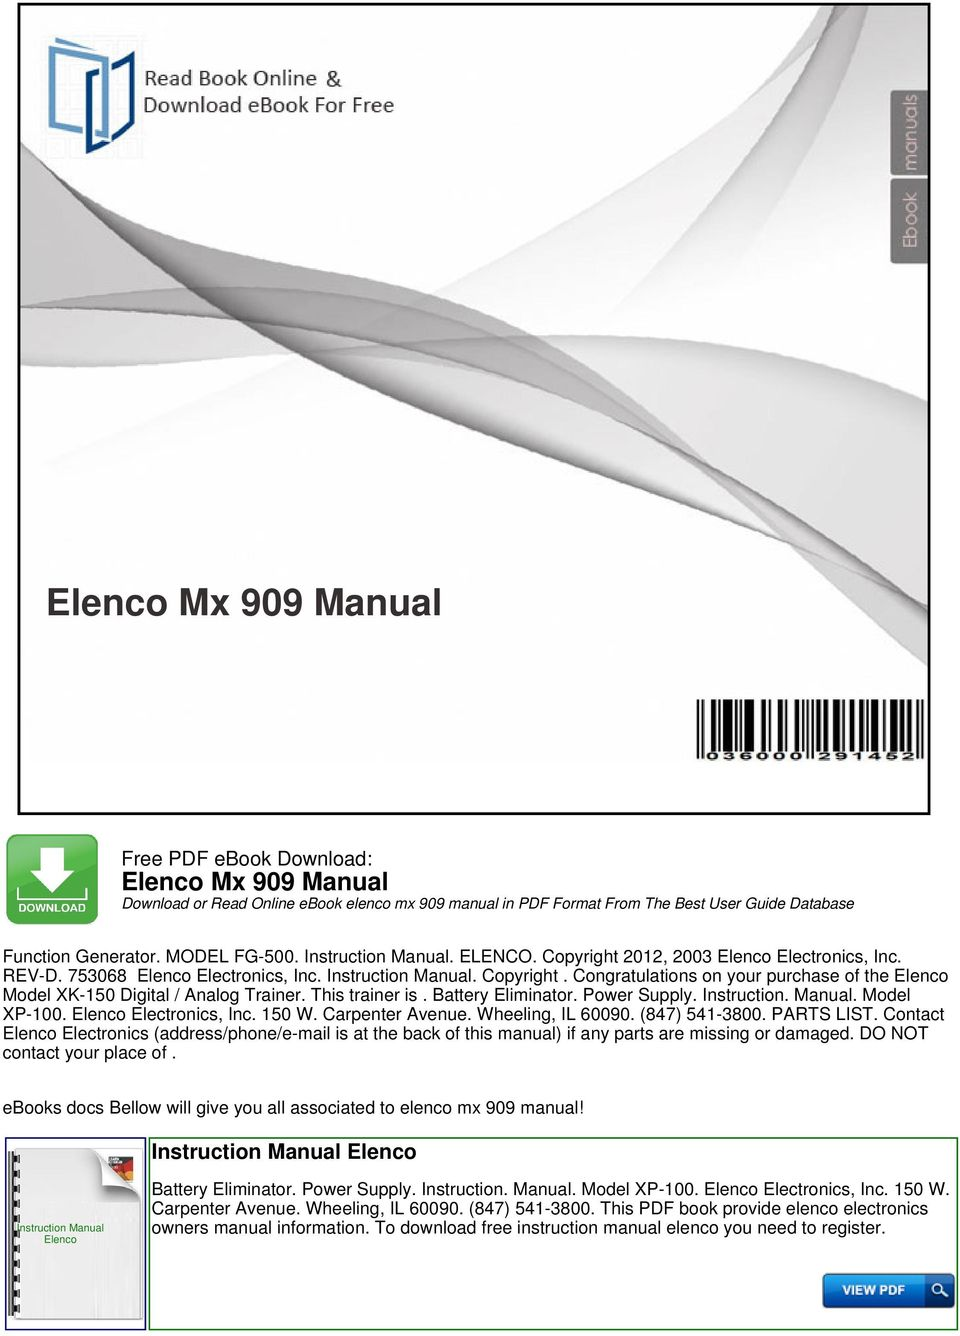 Elenco Mx 909 Manual Download Or Read Online Ebook Pdf 1997 Toyota Corolla Cruise Control Circuit Wiring Diagrams This Trainer Is Battery Eliminator Power Supply Instruction Model Xp